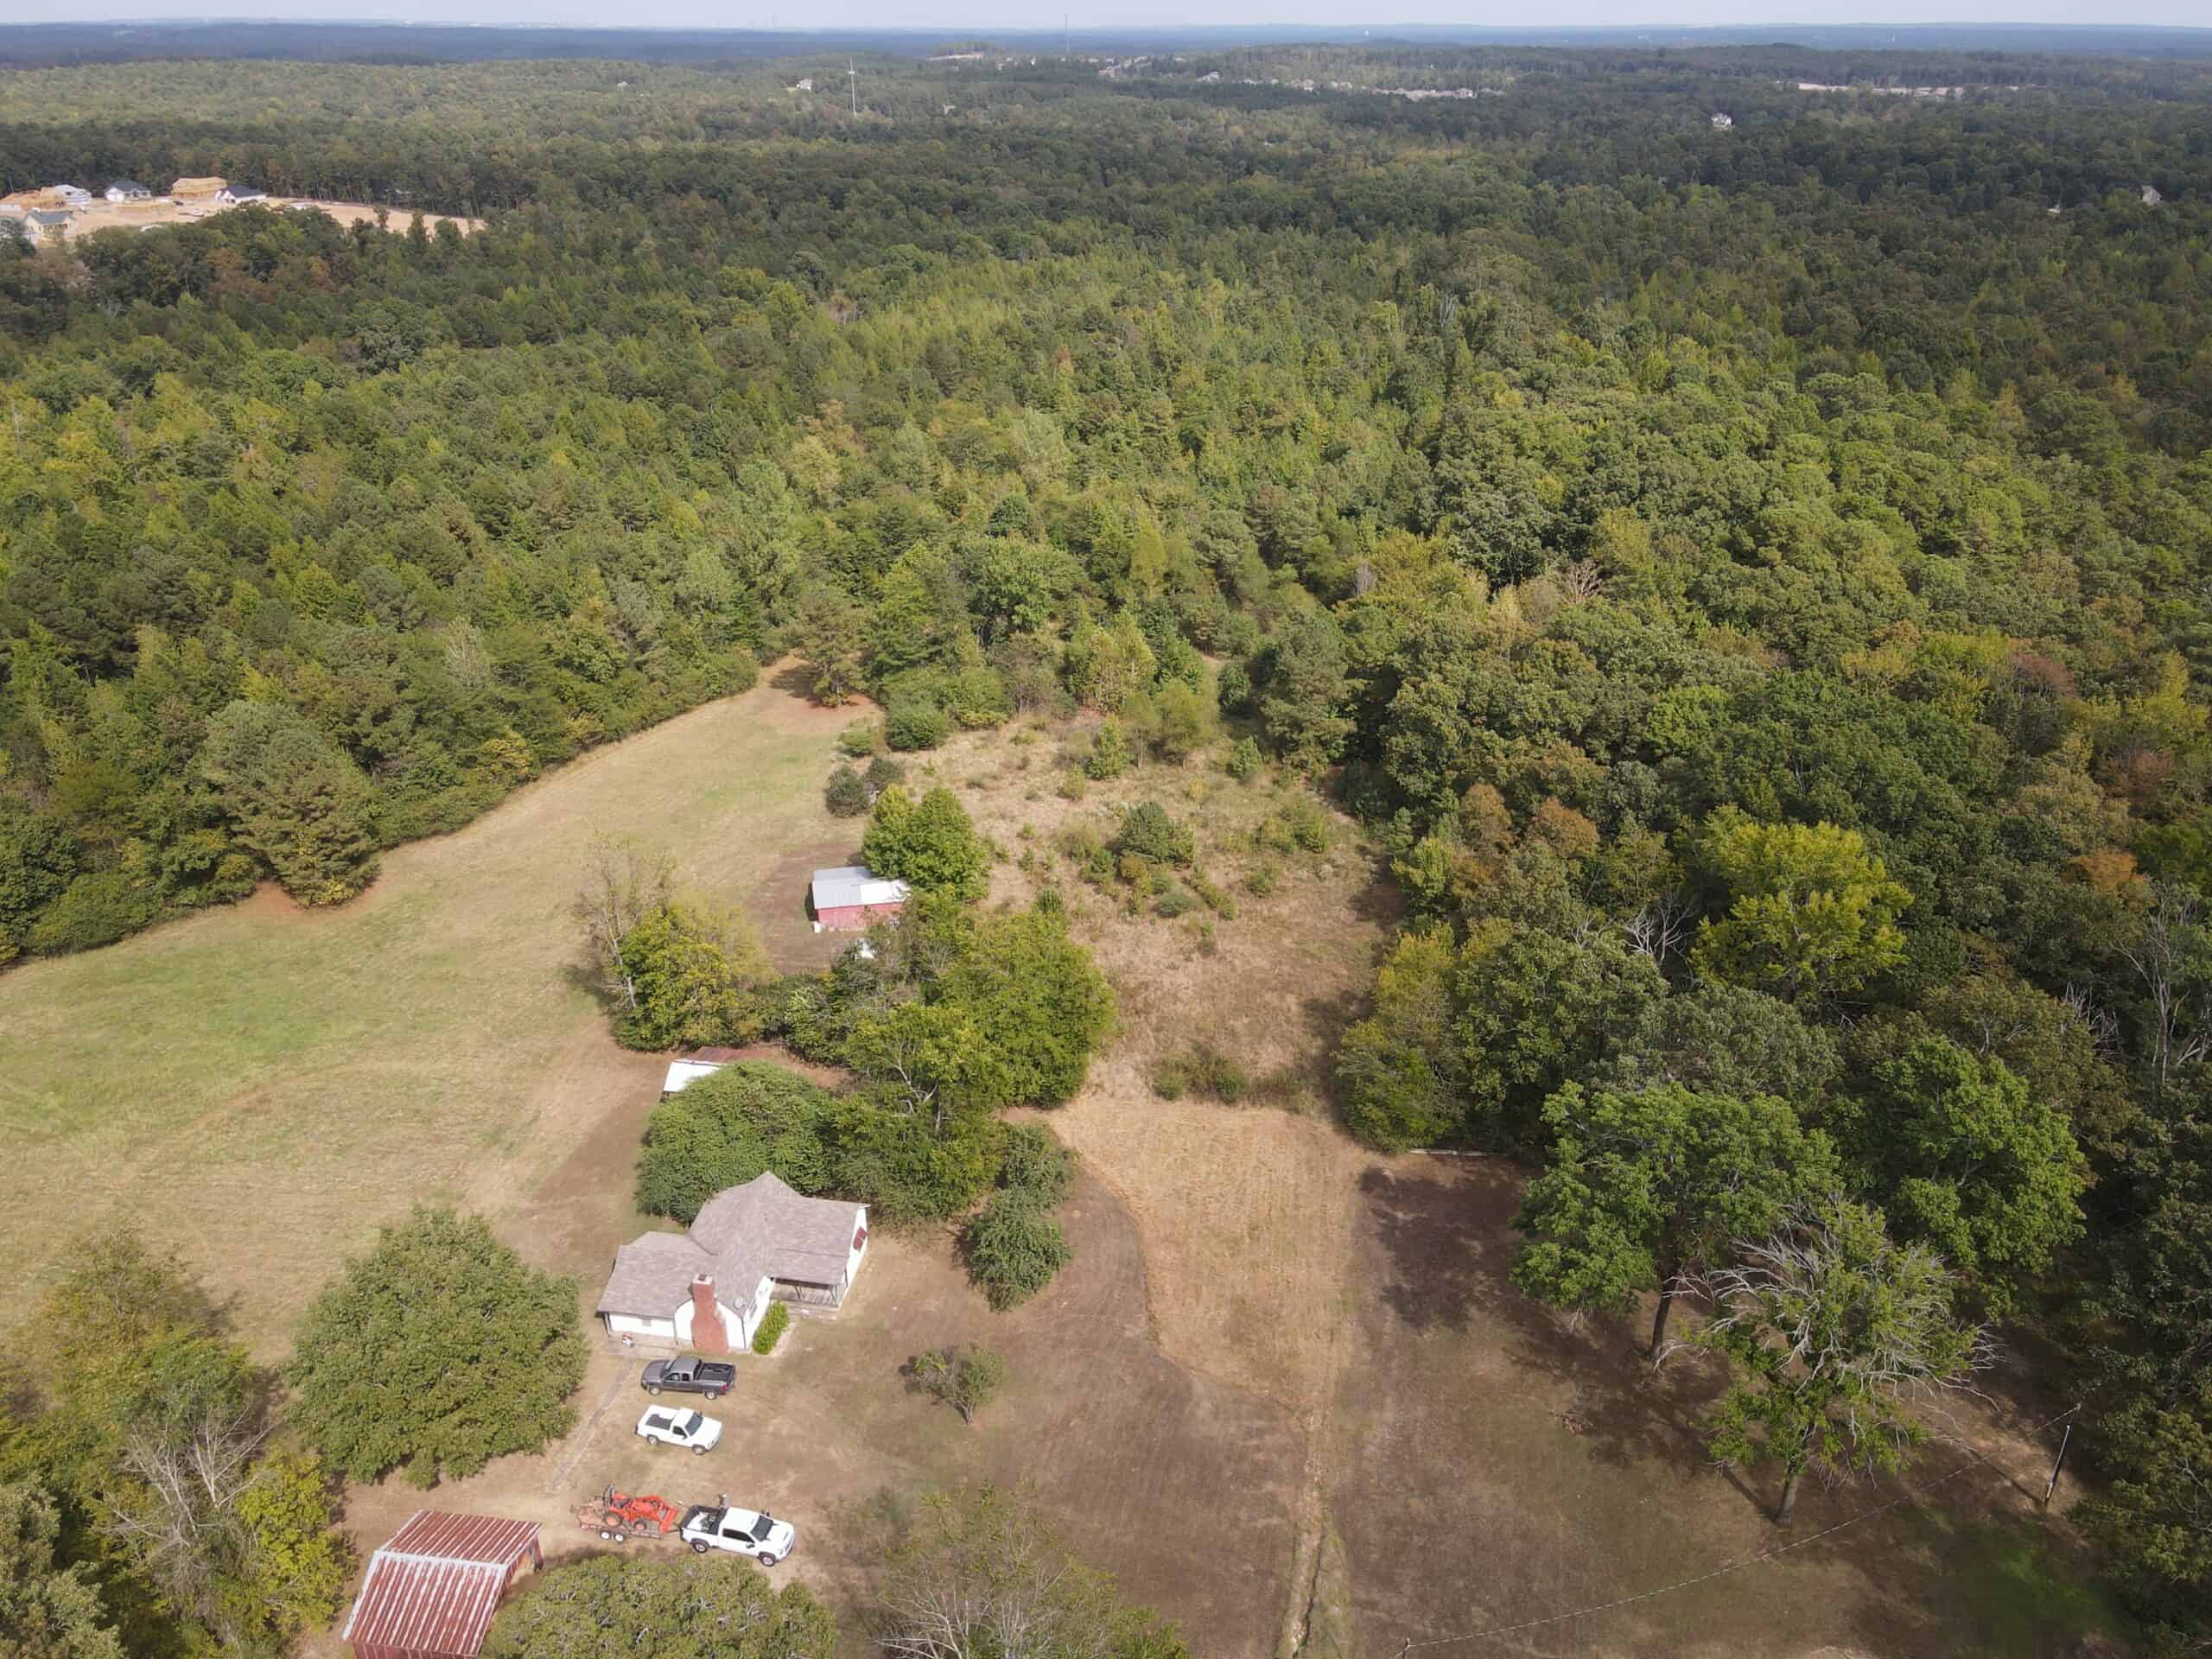 Development Land with Timber For Sale in Alexander, AR